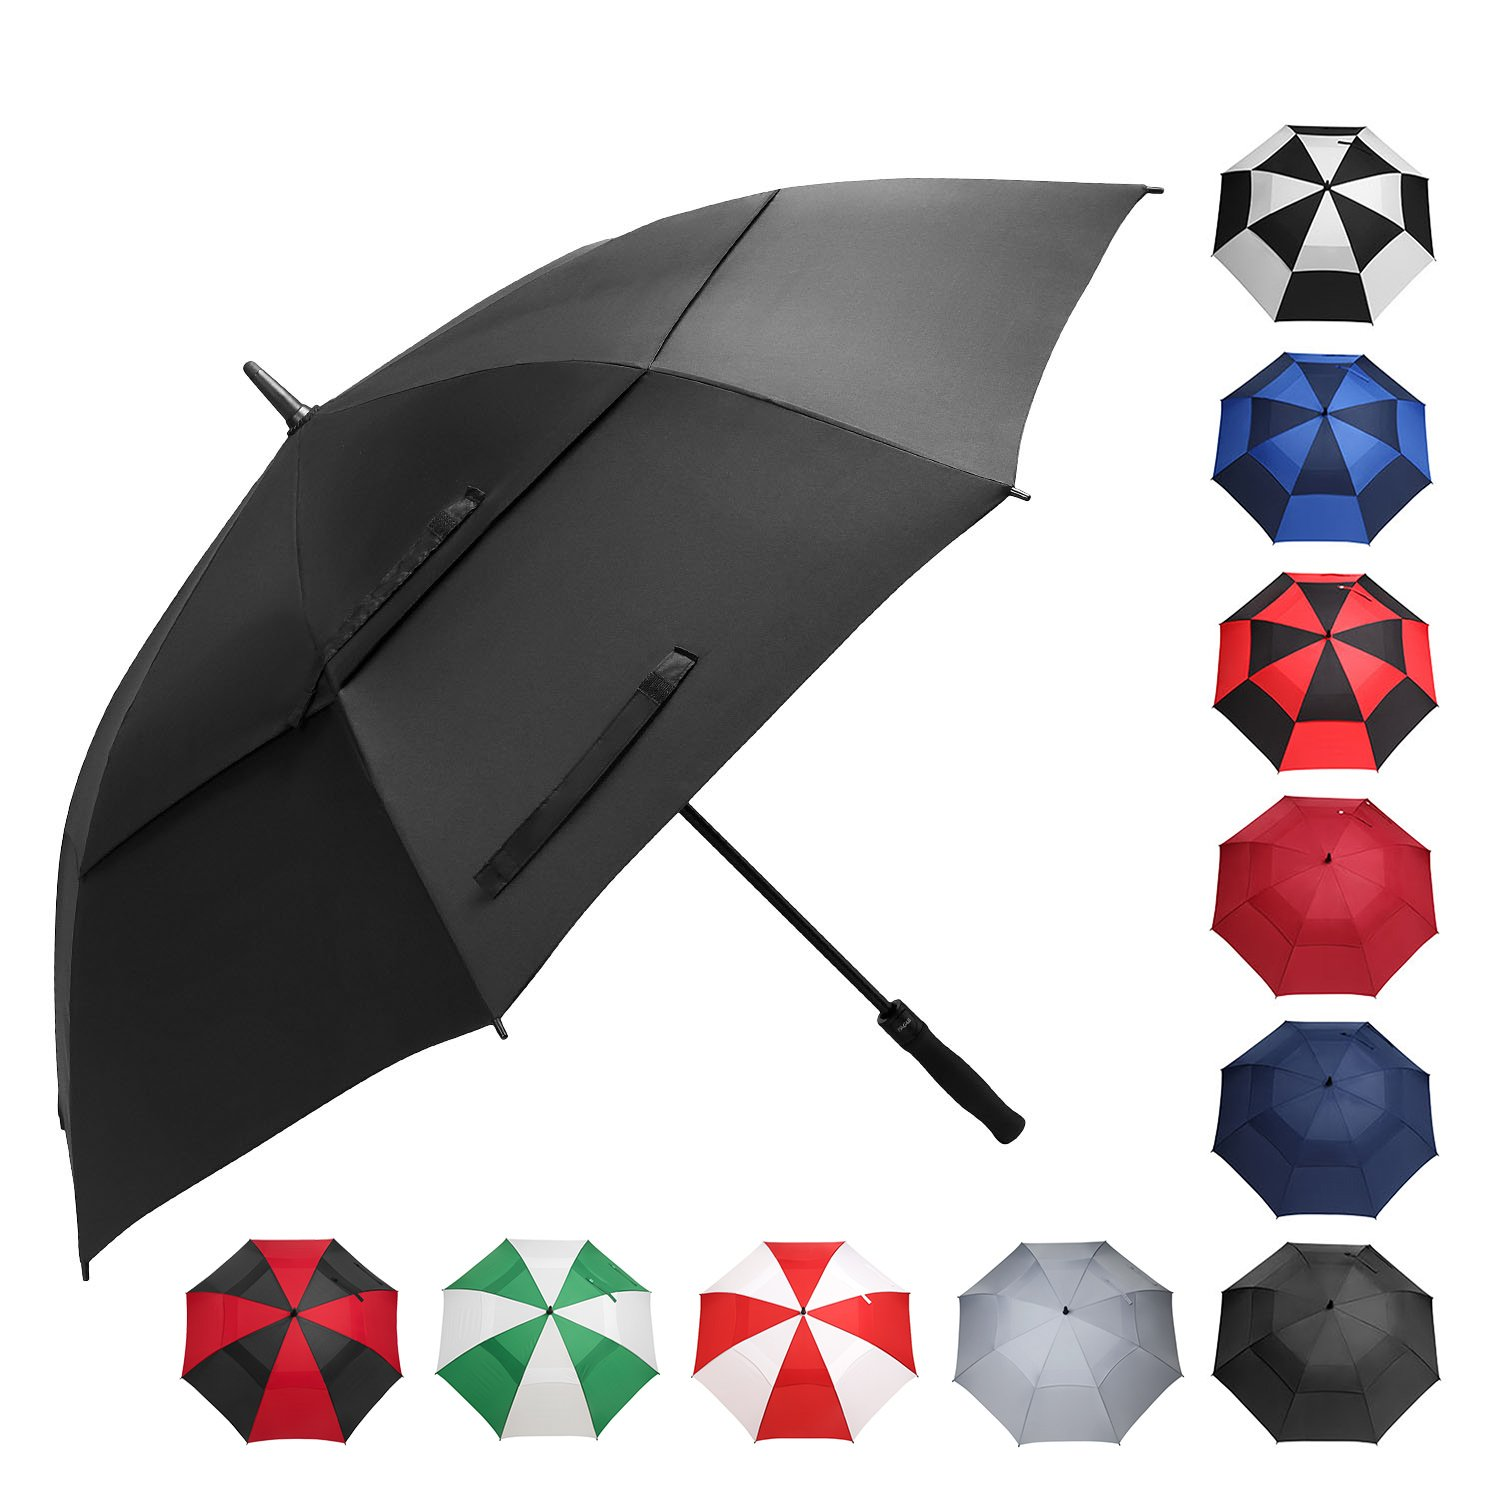 BAGAIL Golf Umbrella 68/62/58 in Large Oversize Double Canopy Vented Windproof Waterproof Automatic Open Stick Umbrellas for Men and Women by BAGAIL